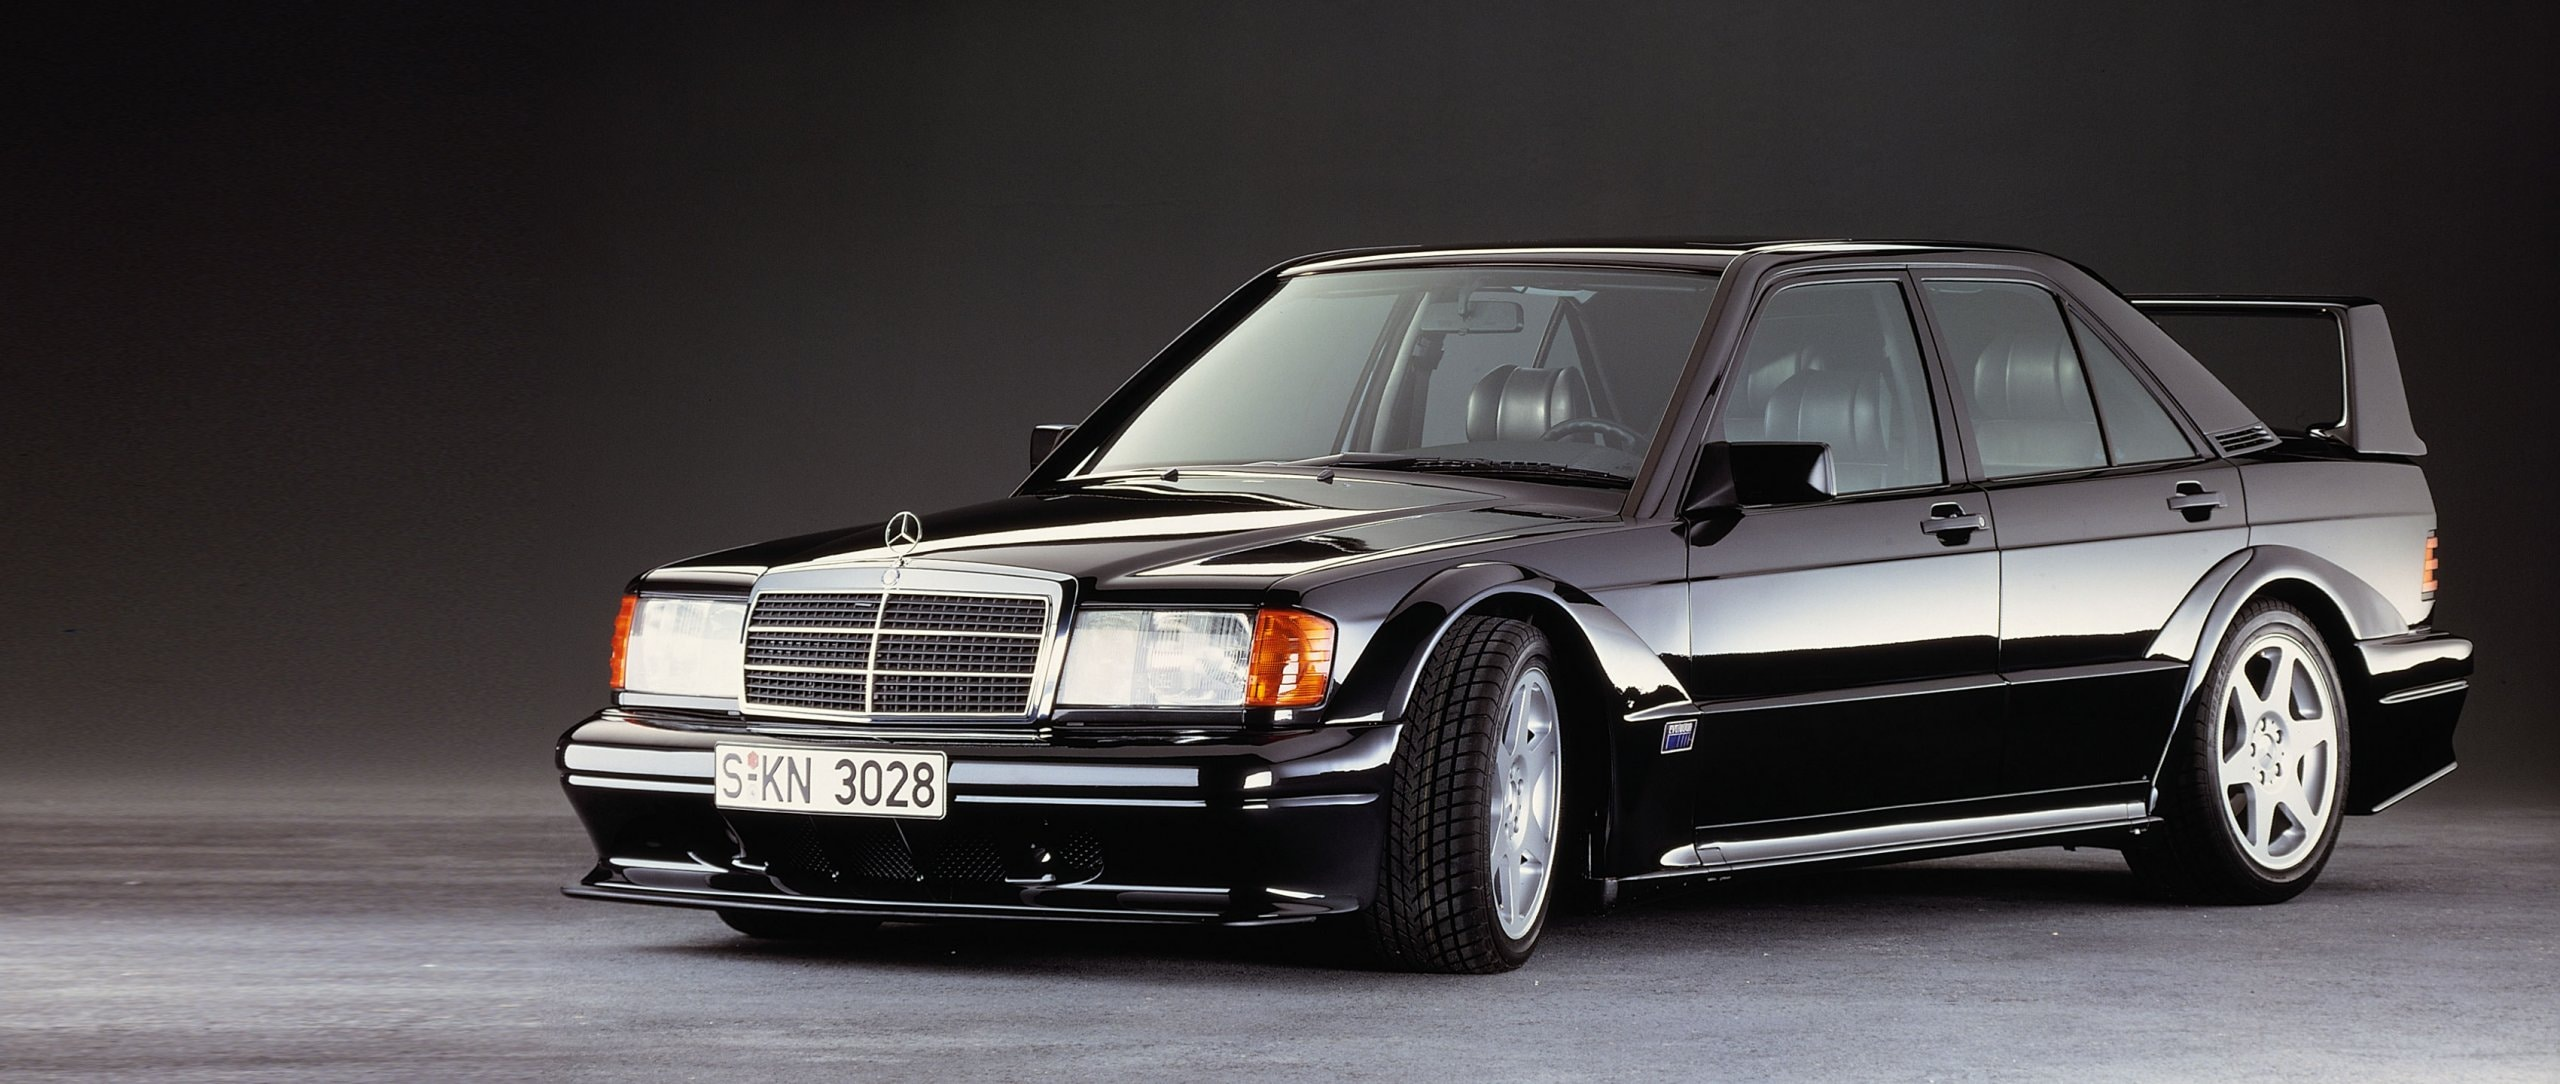 "Five Mercedes-Benz classic cars are eligible for the ""H"" historical number plate in 2020."